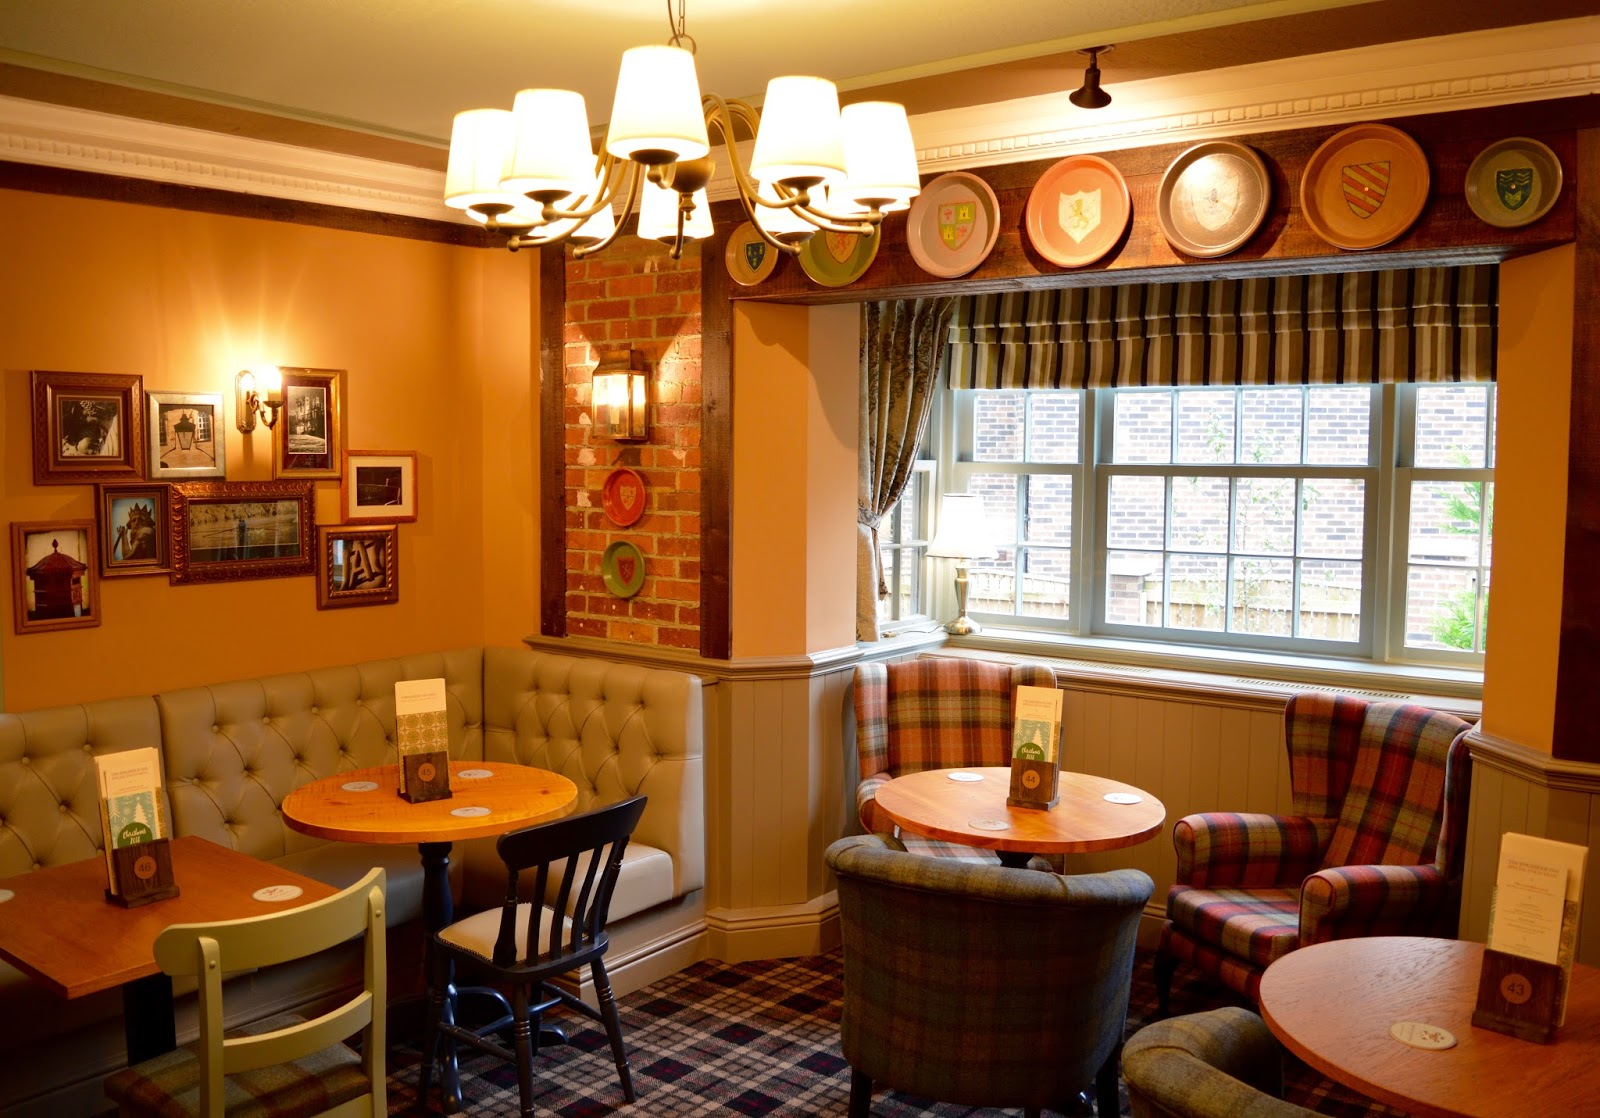 The Kingslodge Inn, Durham   A Review - A lovely budget hotel near the train station and city centre - bar area